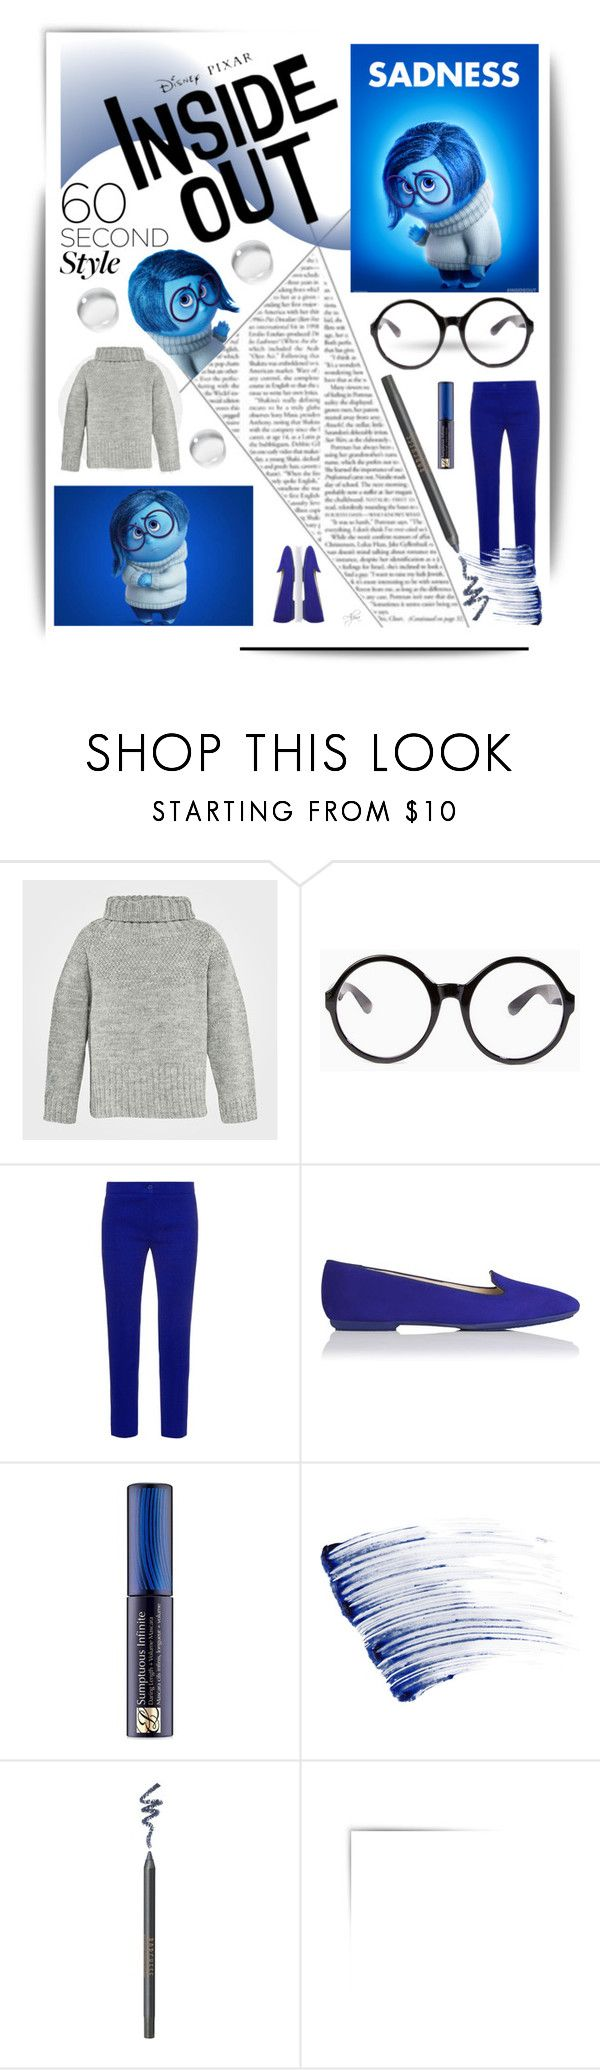 """60-Second Style: Disney Character Costume"" by alevalepra ❤ liked on Polyvore featuring Tobi, Etro, L.K.Bennett, Estée Lauder, Lancôme, Borghese, Halloween, 60secondstyle and disneycharactercostume"